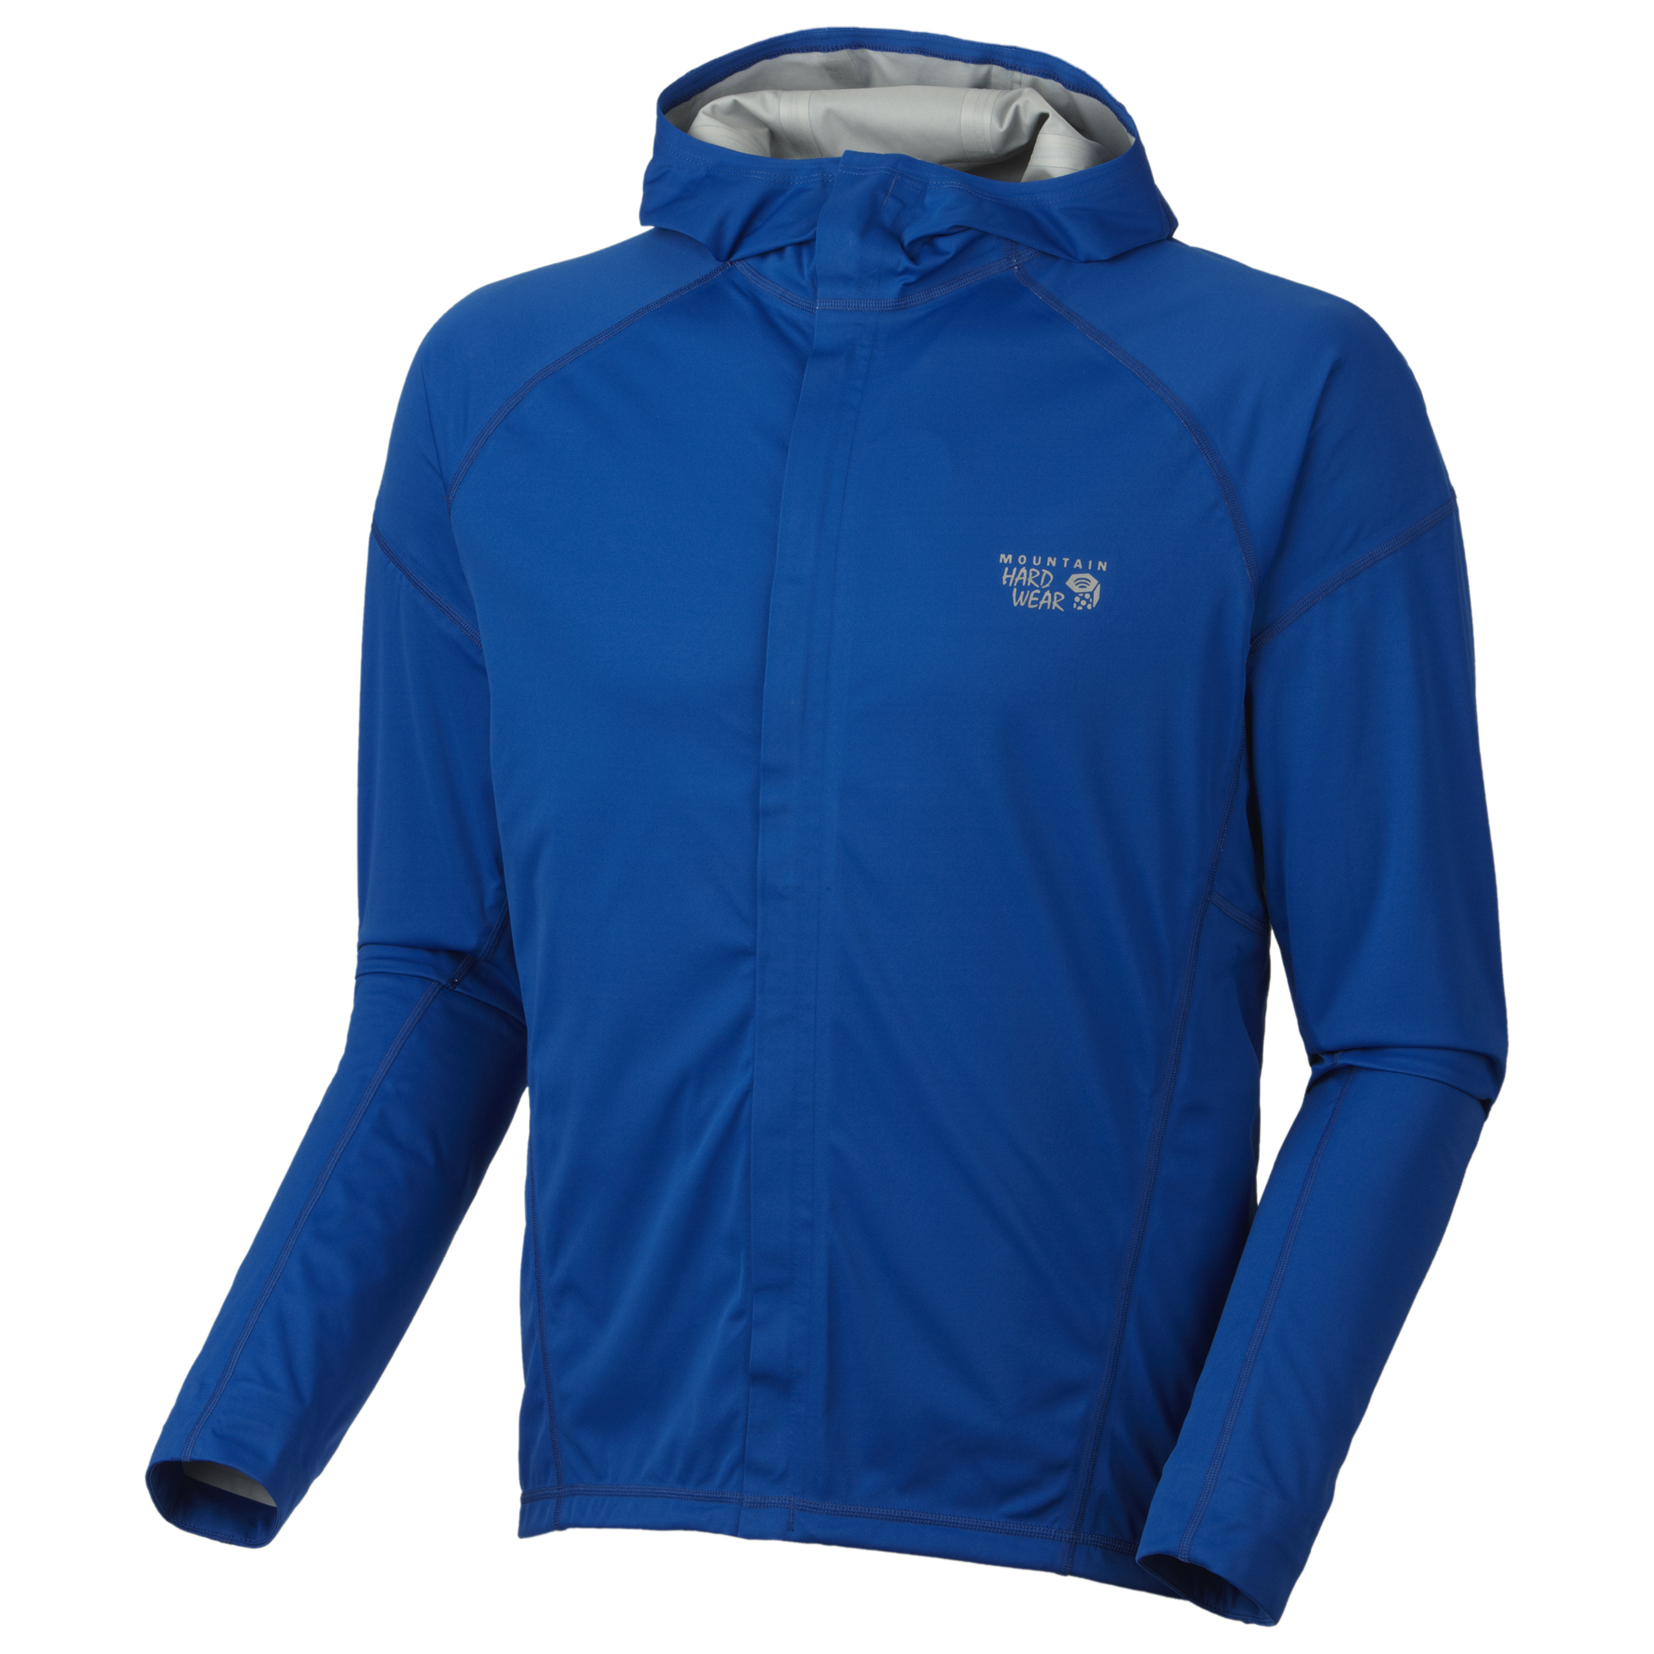 82179-Mountain_Hardwear_and_Montrail_Hooded_Effusion_Jacket_14x14cm.jpg